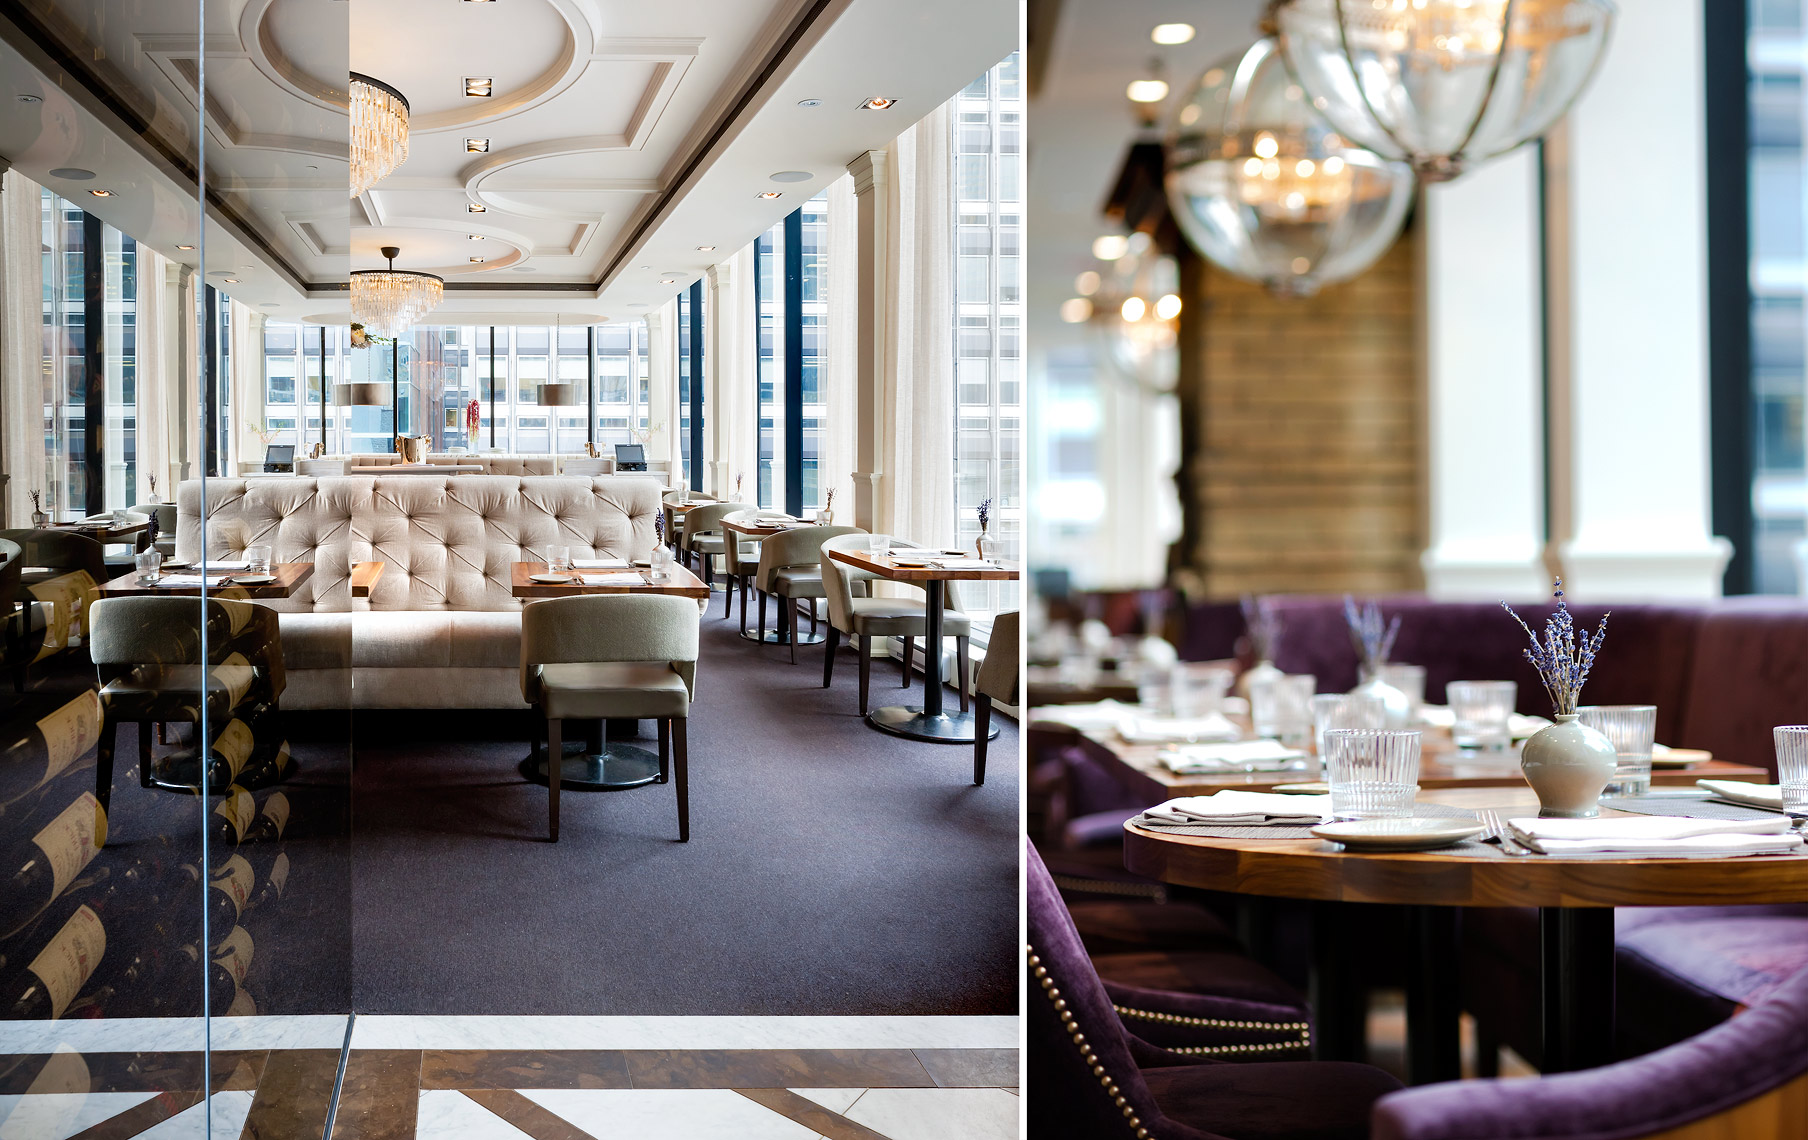 The Chase Restaurant, Toronto, Canada - Restaurant Photography